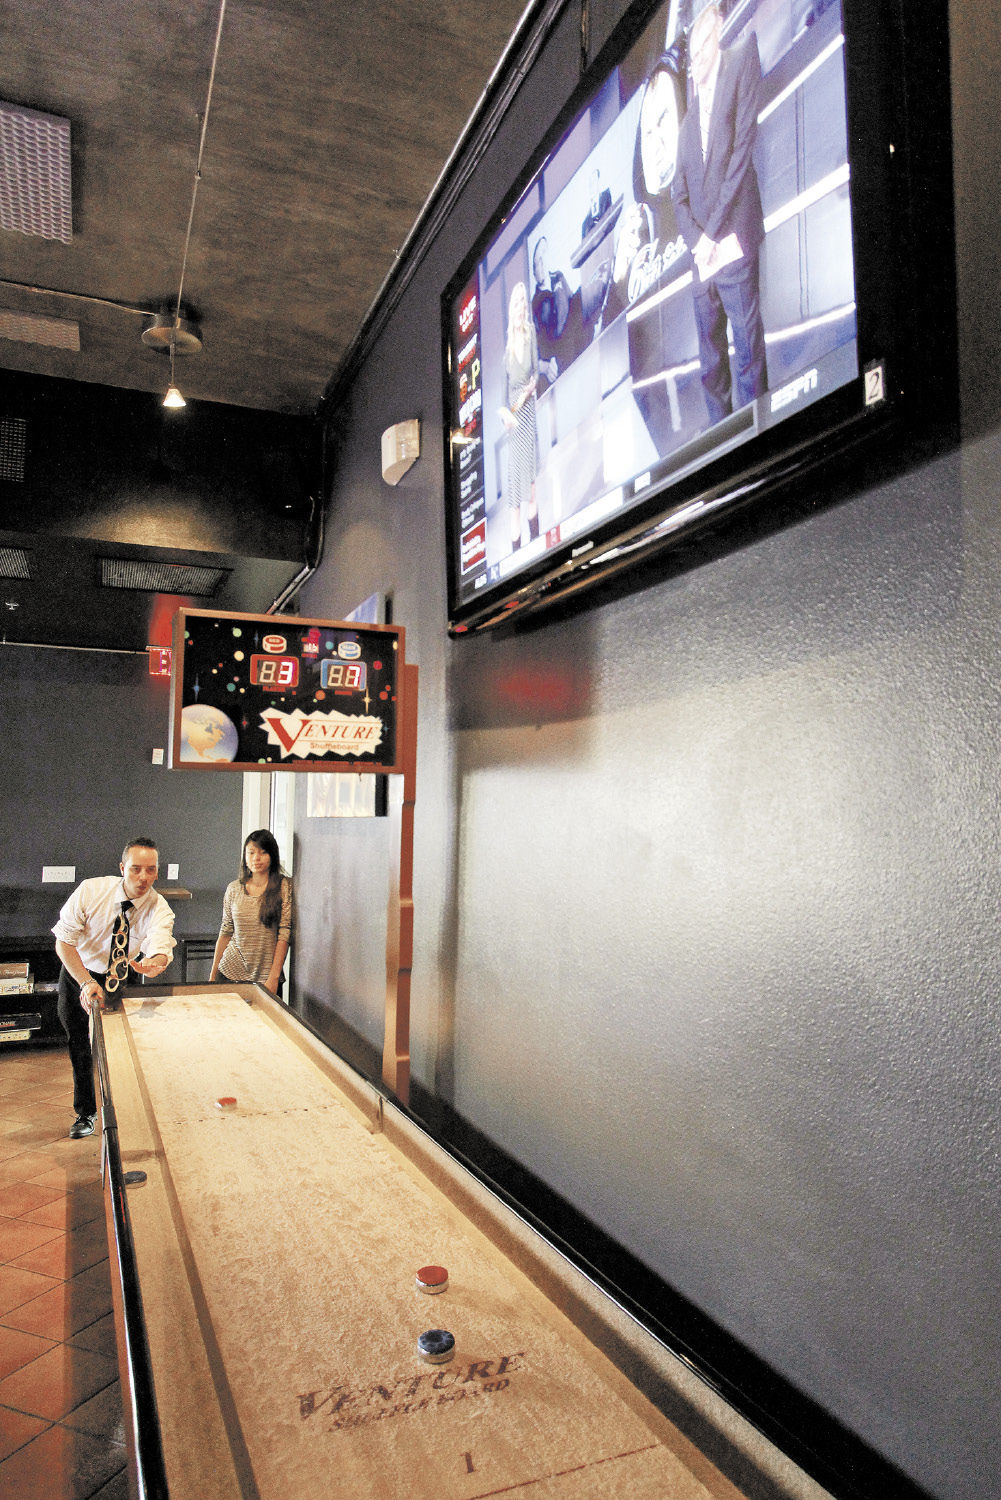 Catching the big game at sports bars | Winterlife 2014